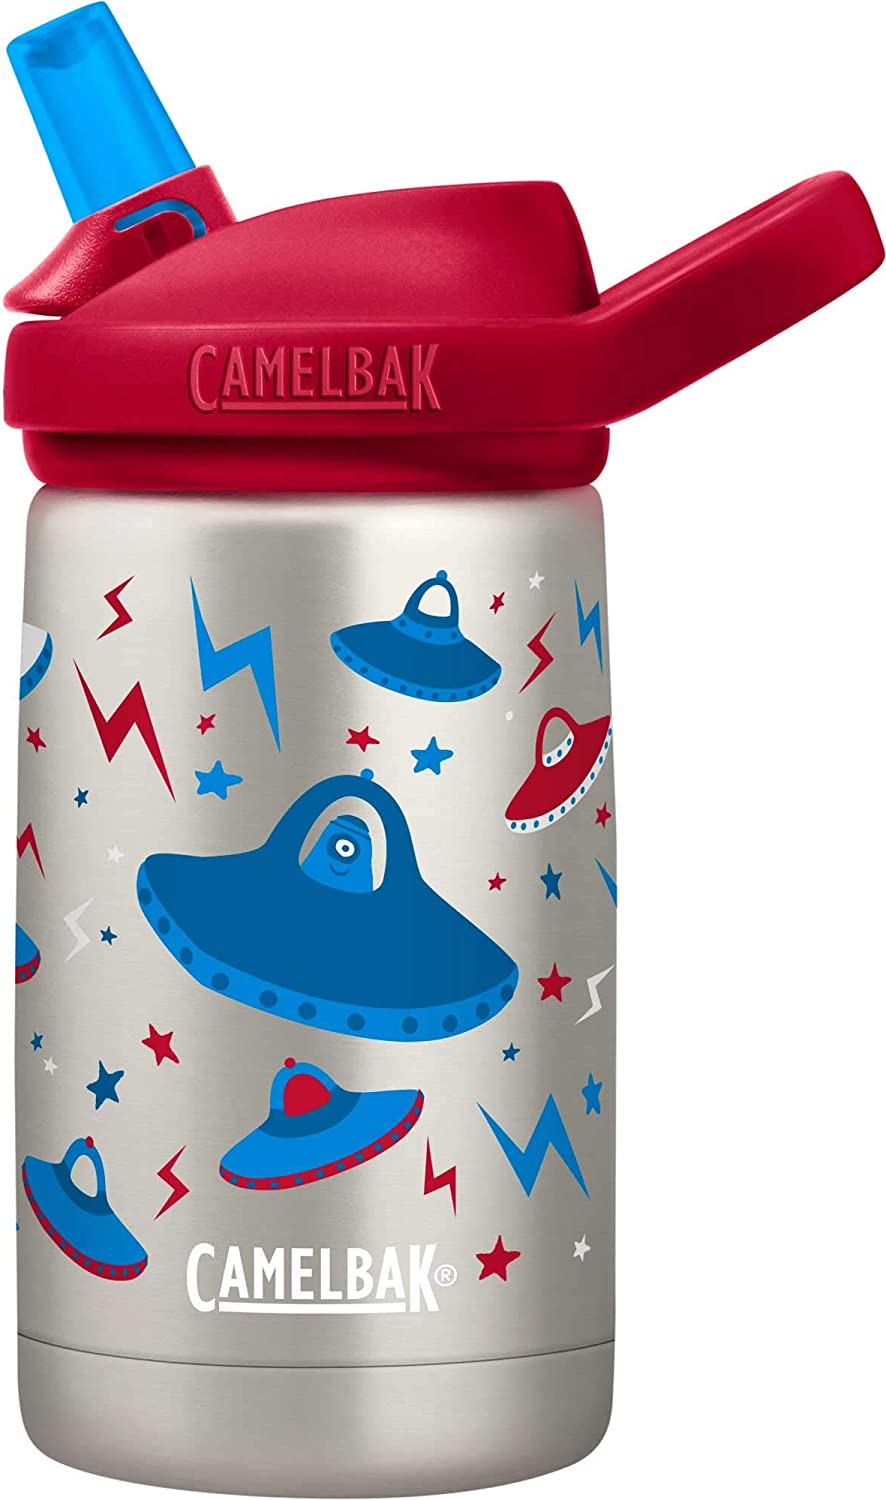 CamelBak Eddy+ Kids 12 oz Bottle, Vacuum Insulated Stainless Steel